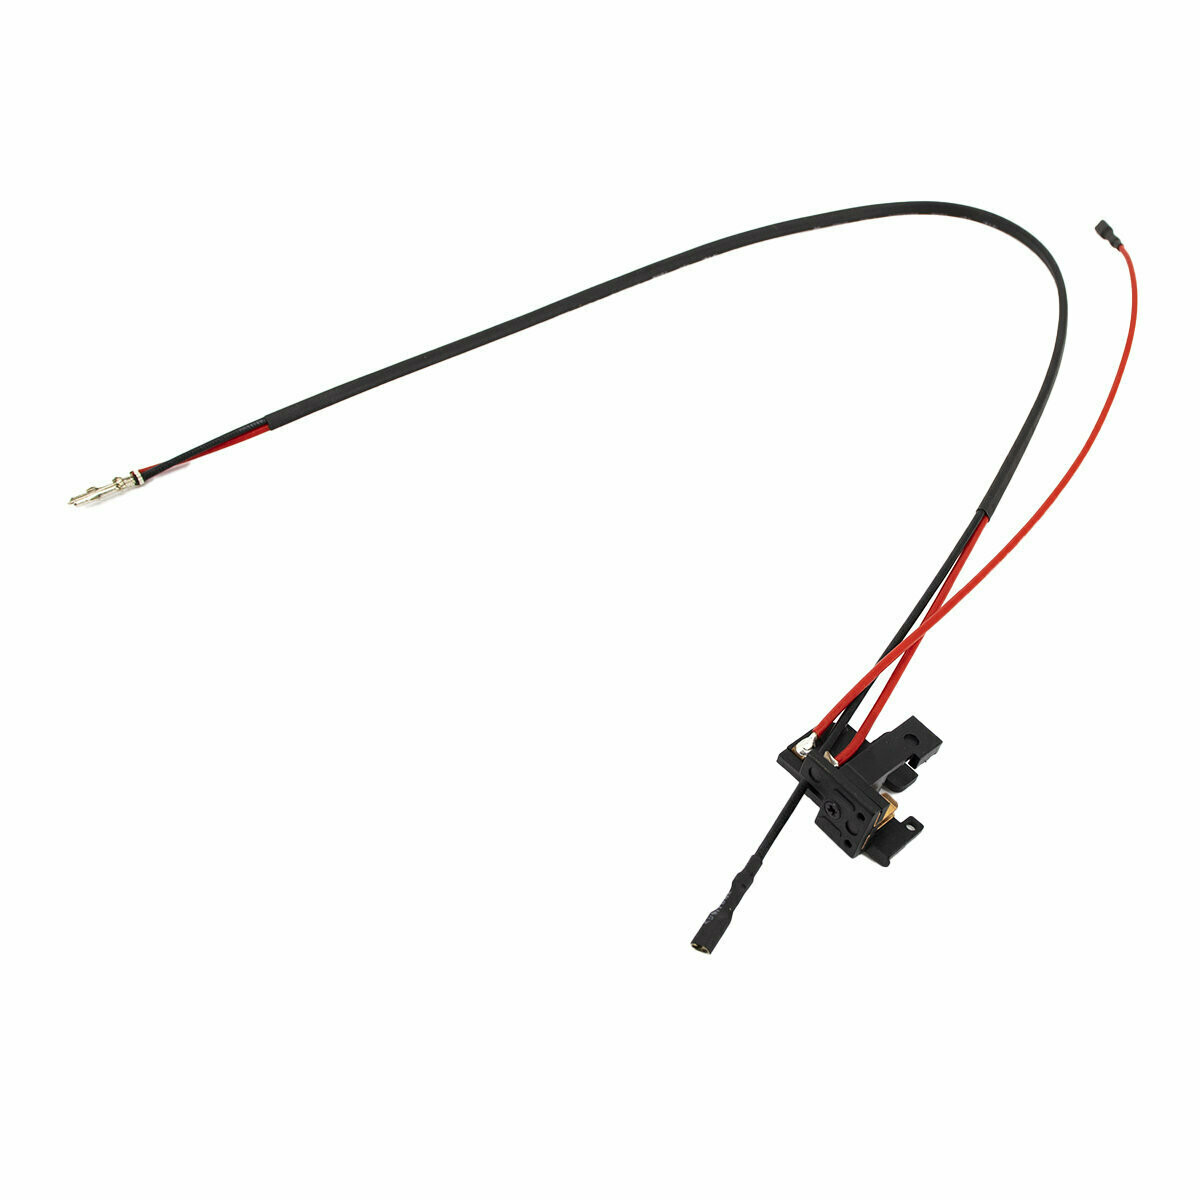 Valken Rear Wiring and Trigger Switch Assembly for Ver. 2 Airsoft AEGs